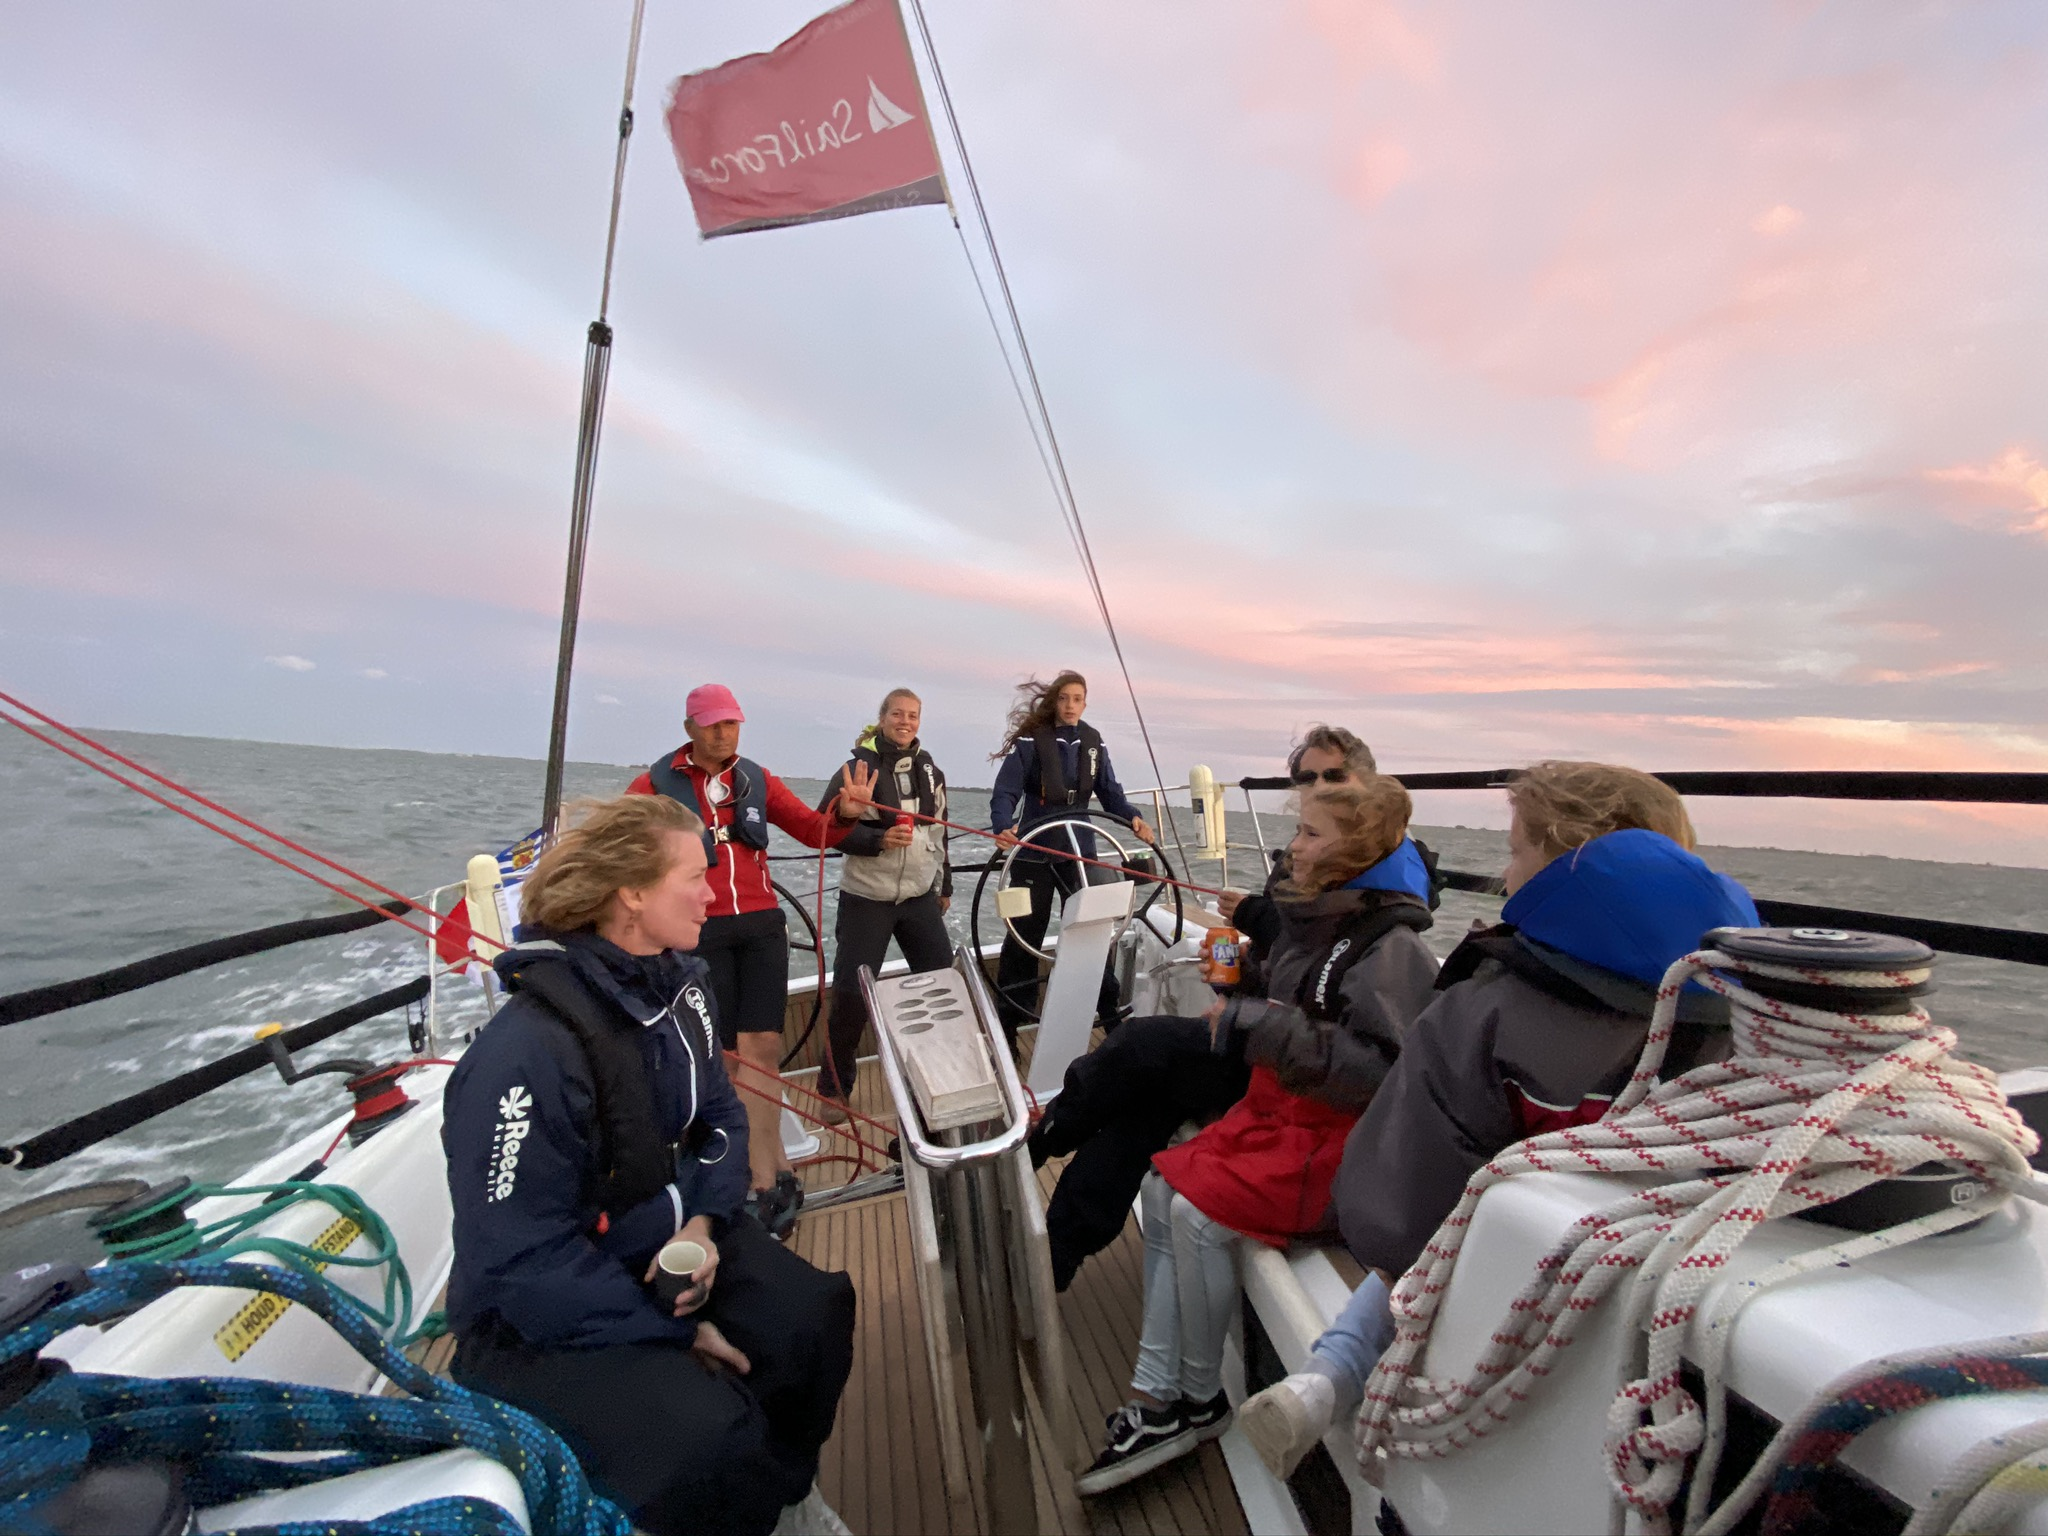 Sunset sailing met SailForce 27-28 augustus 2021